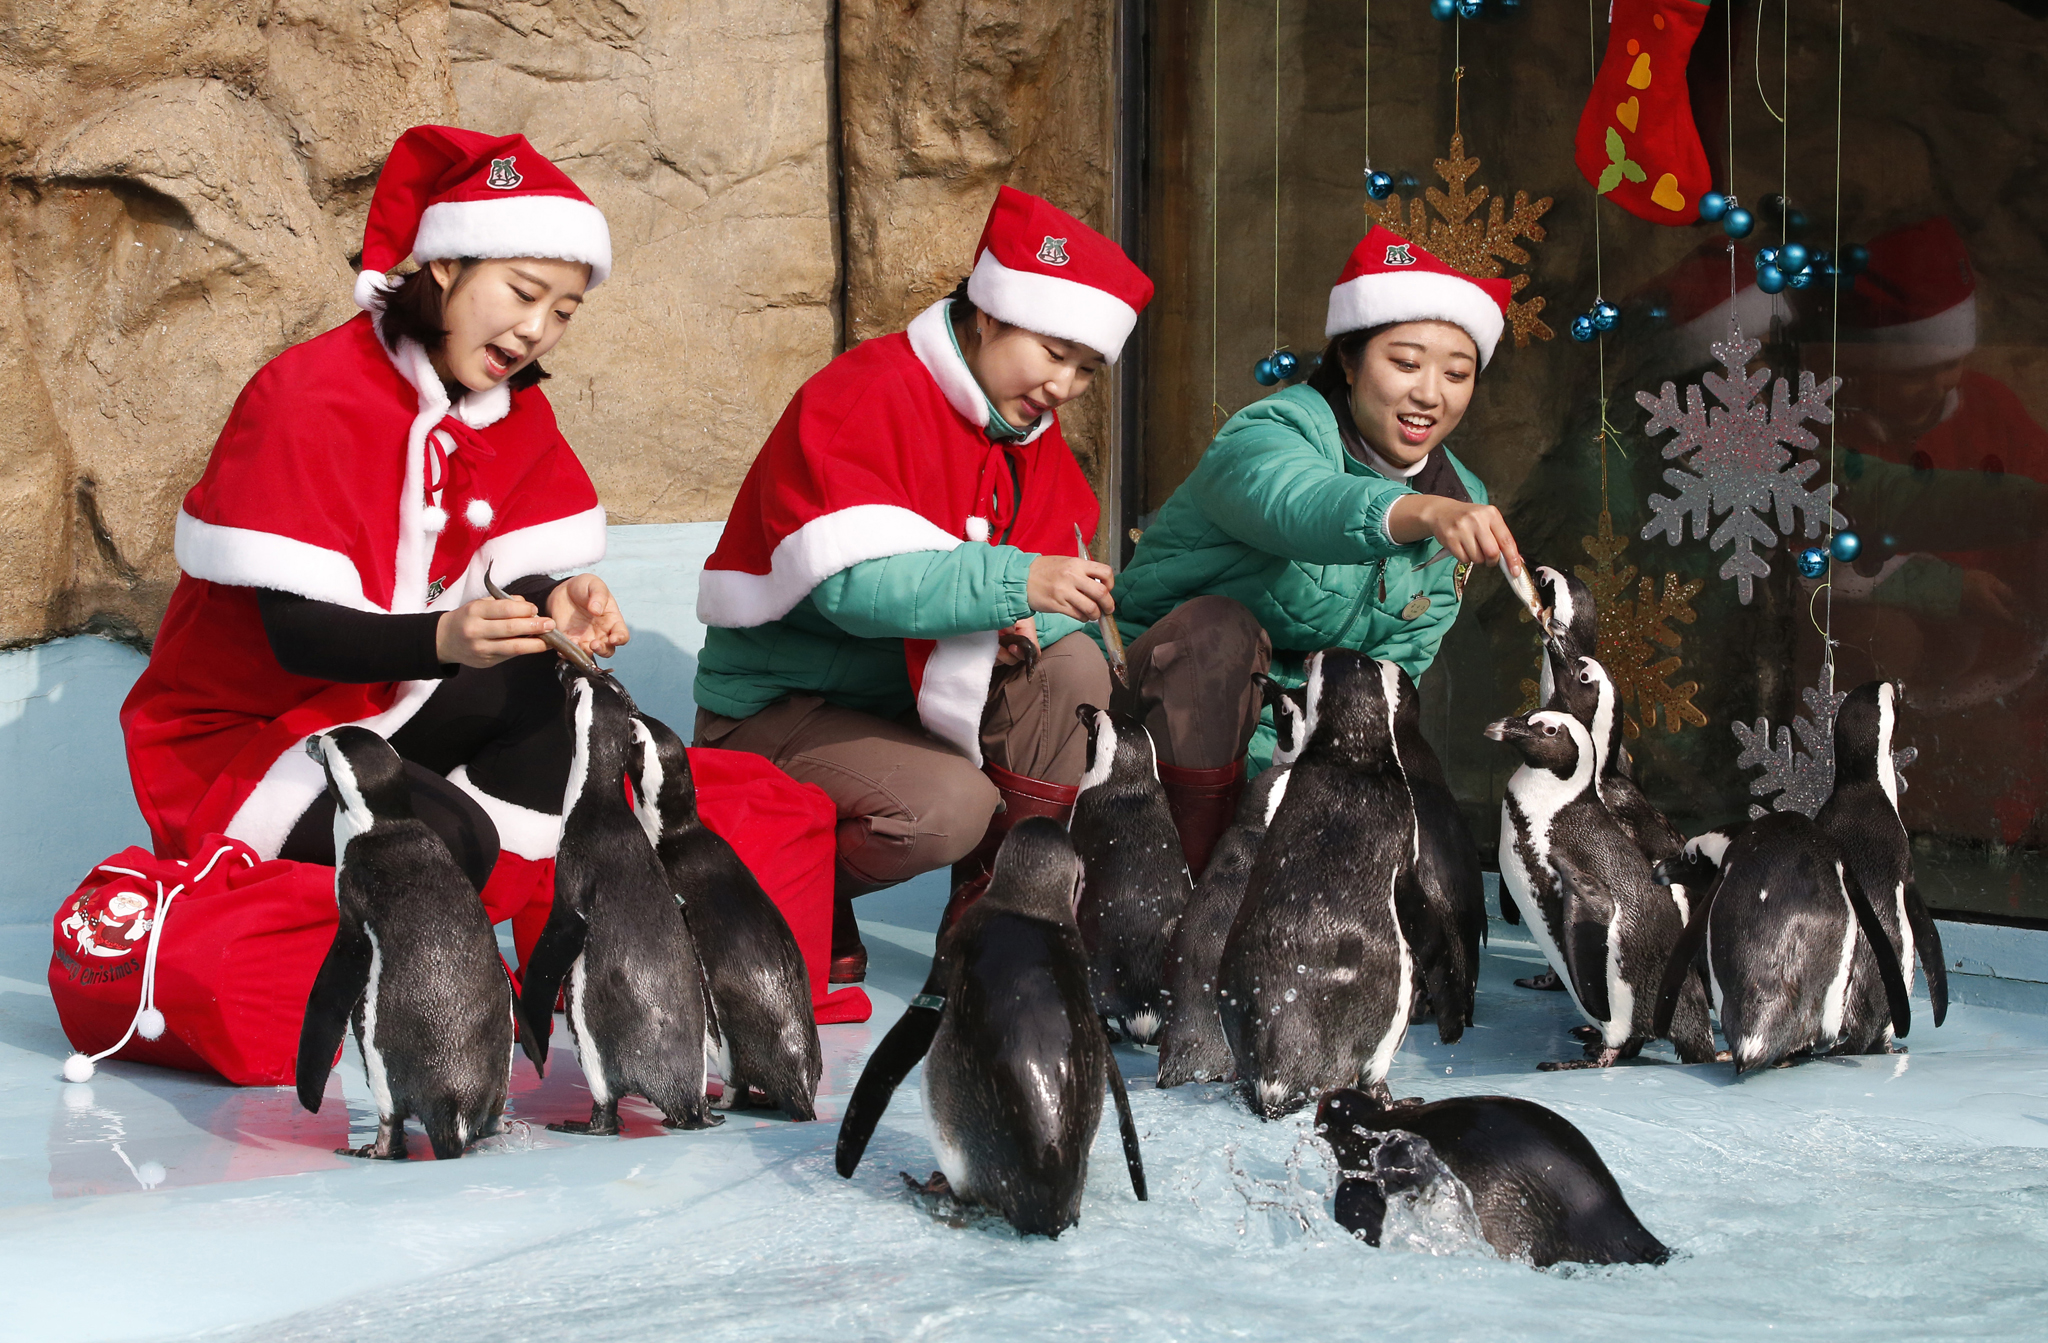 Zookeepers dressed in Santa Claus costumes feed penguins during a Christmas event as part of a promotional event for the upcoming Christmas at the Everland amusement park in Yongin, South Korea, Wednesday, Dec. 23, 2015. (AP Photo/Lee Jin-Man)